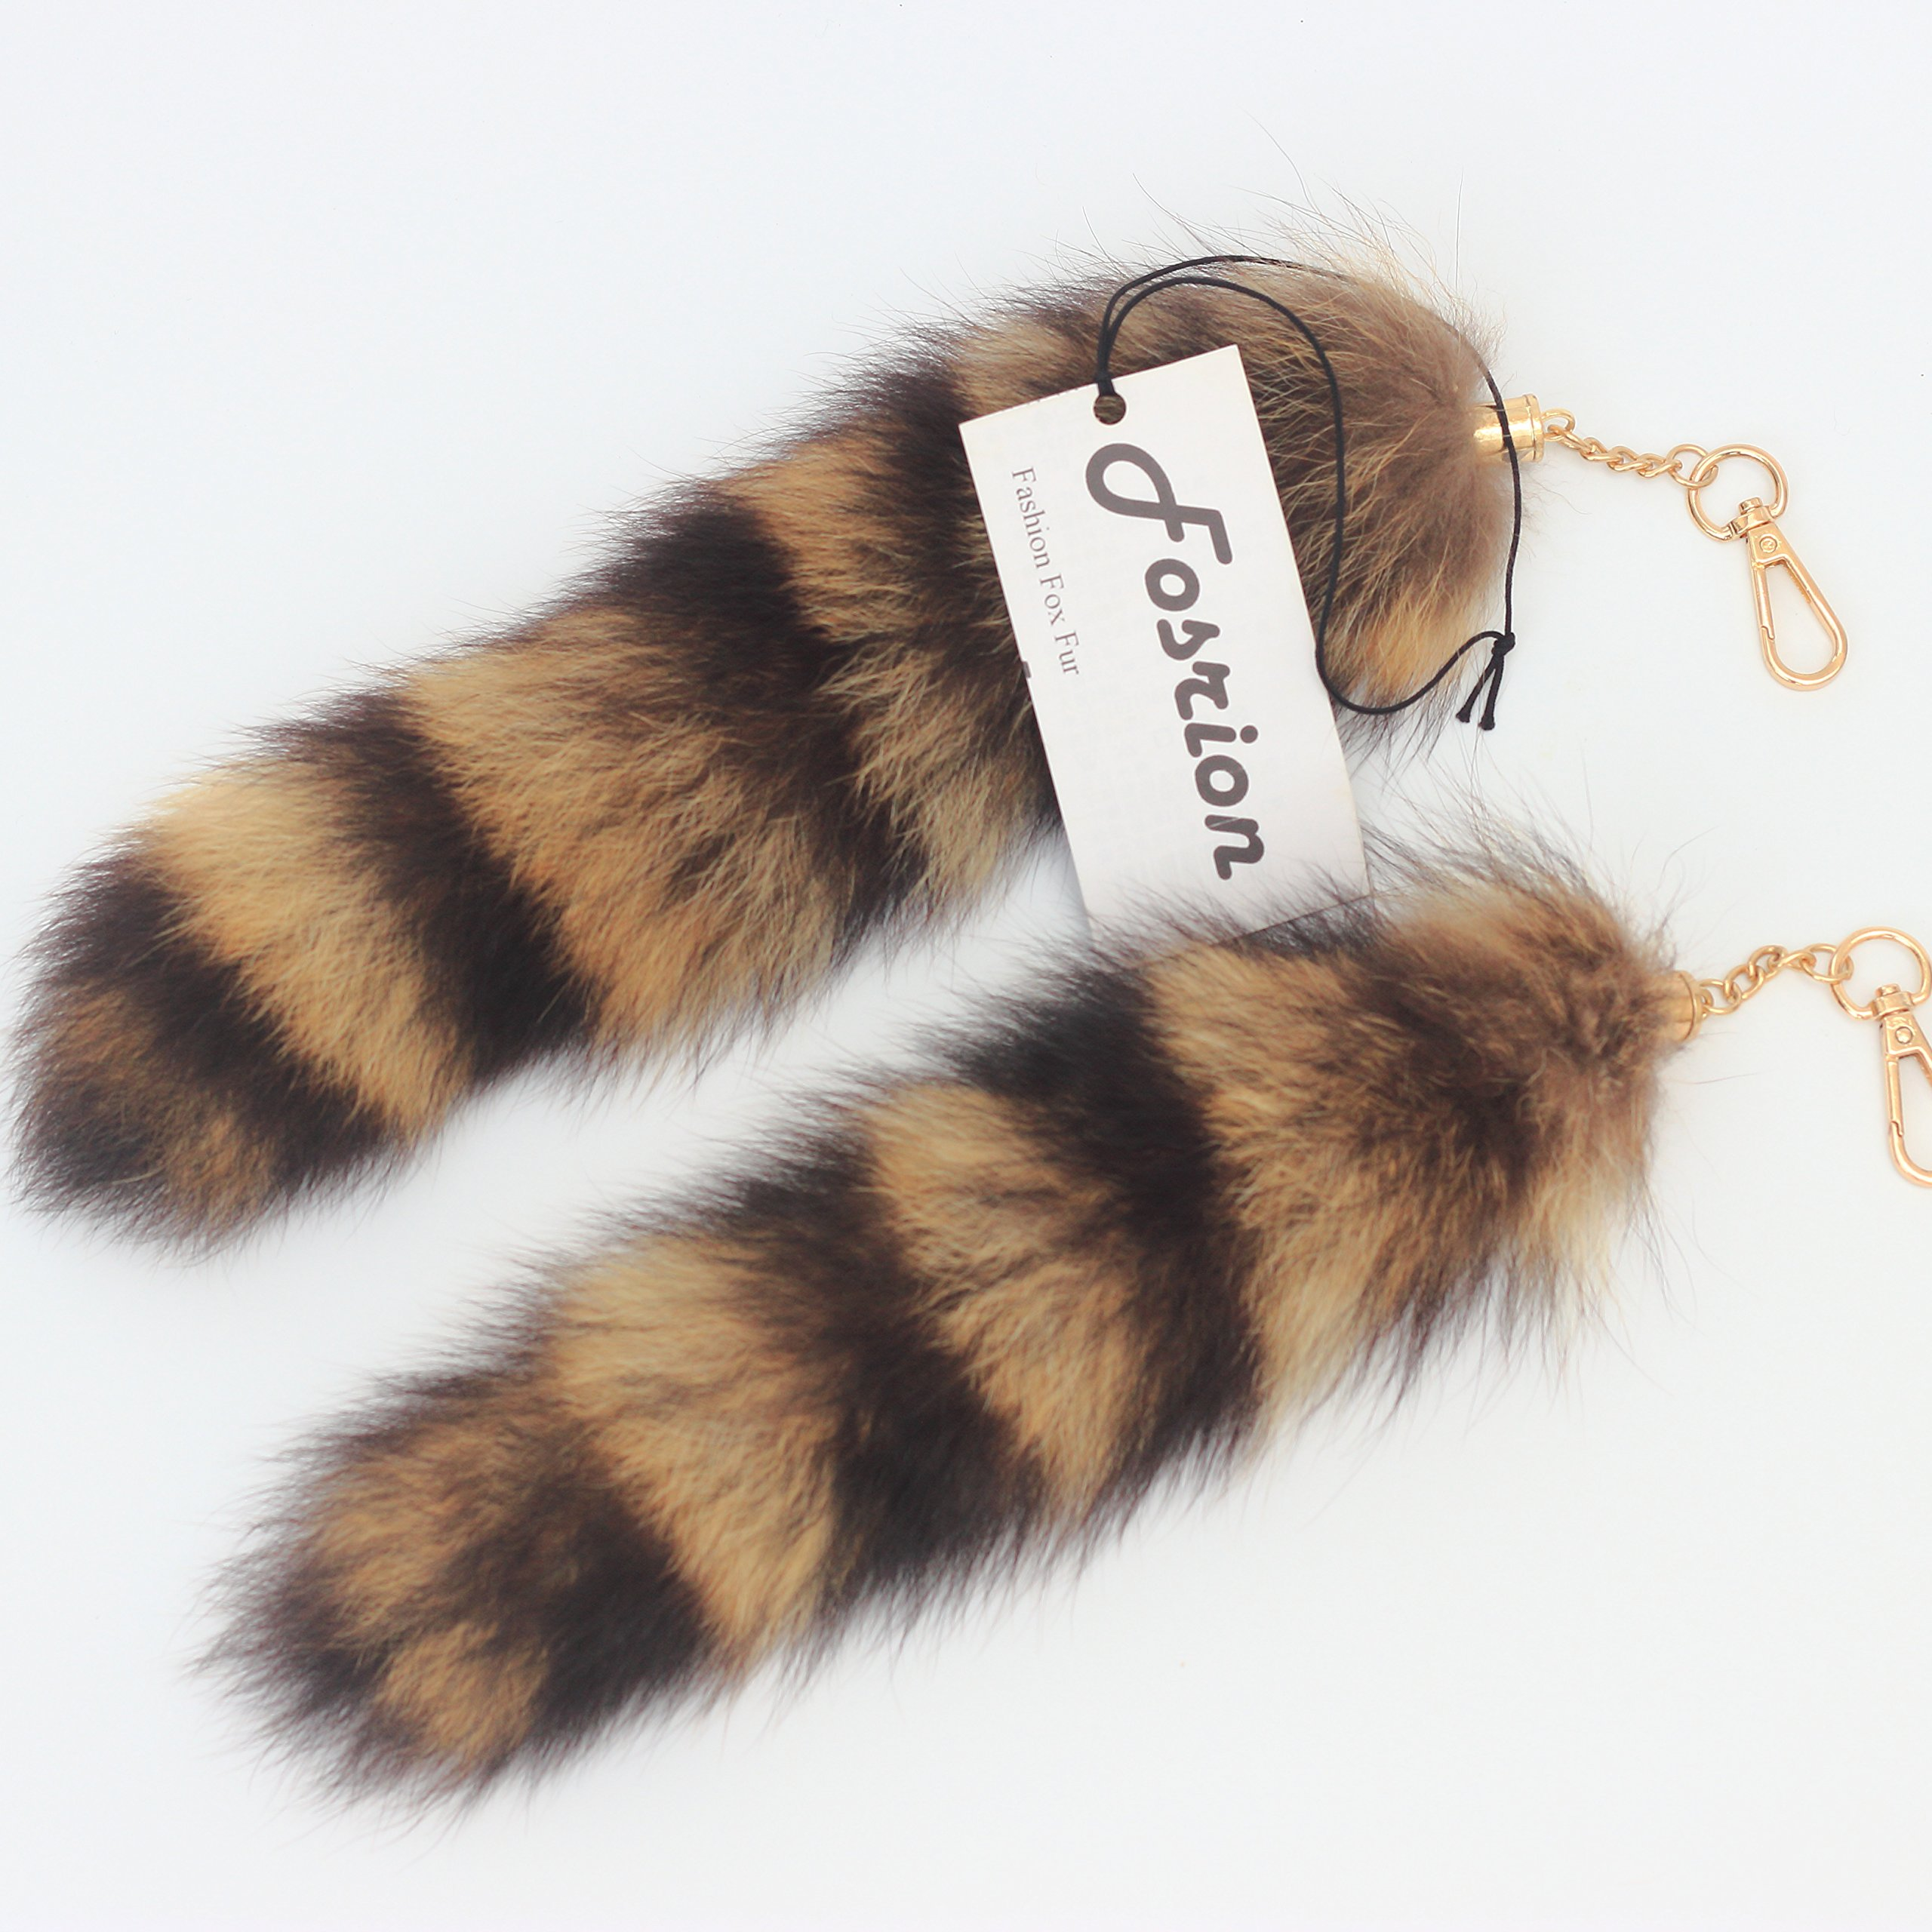 07cfb453b Get Quotations · 2 pcs 10inches Authentic Raccoon Tail Fur Skin Halloween  Party Cosplay Toy Handbag Accessories Key Chain